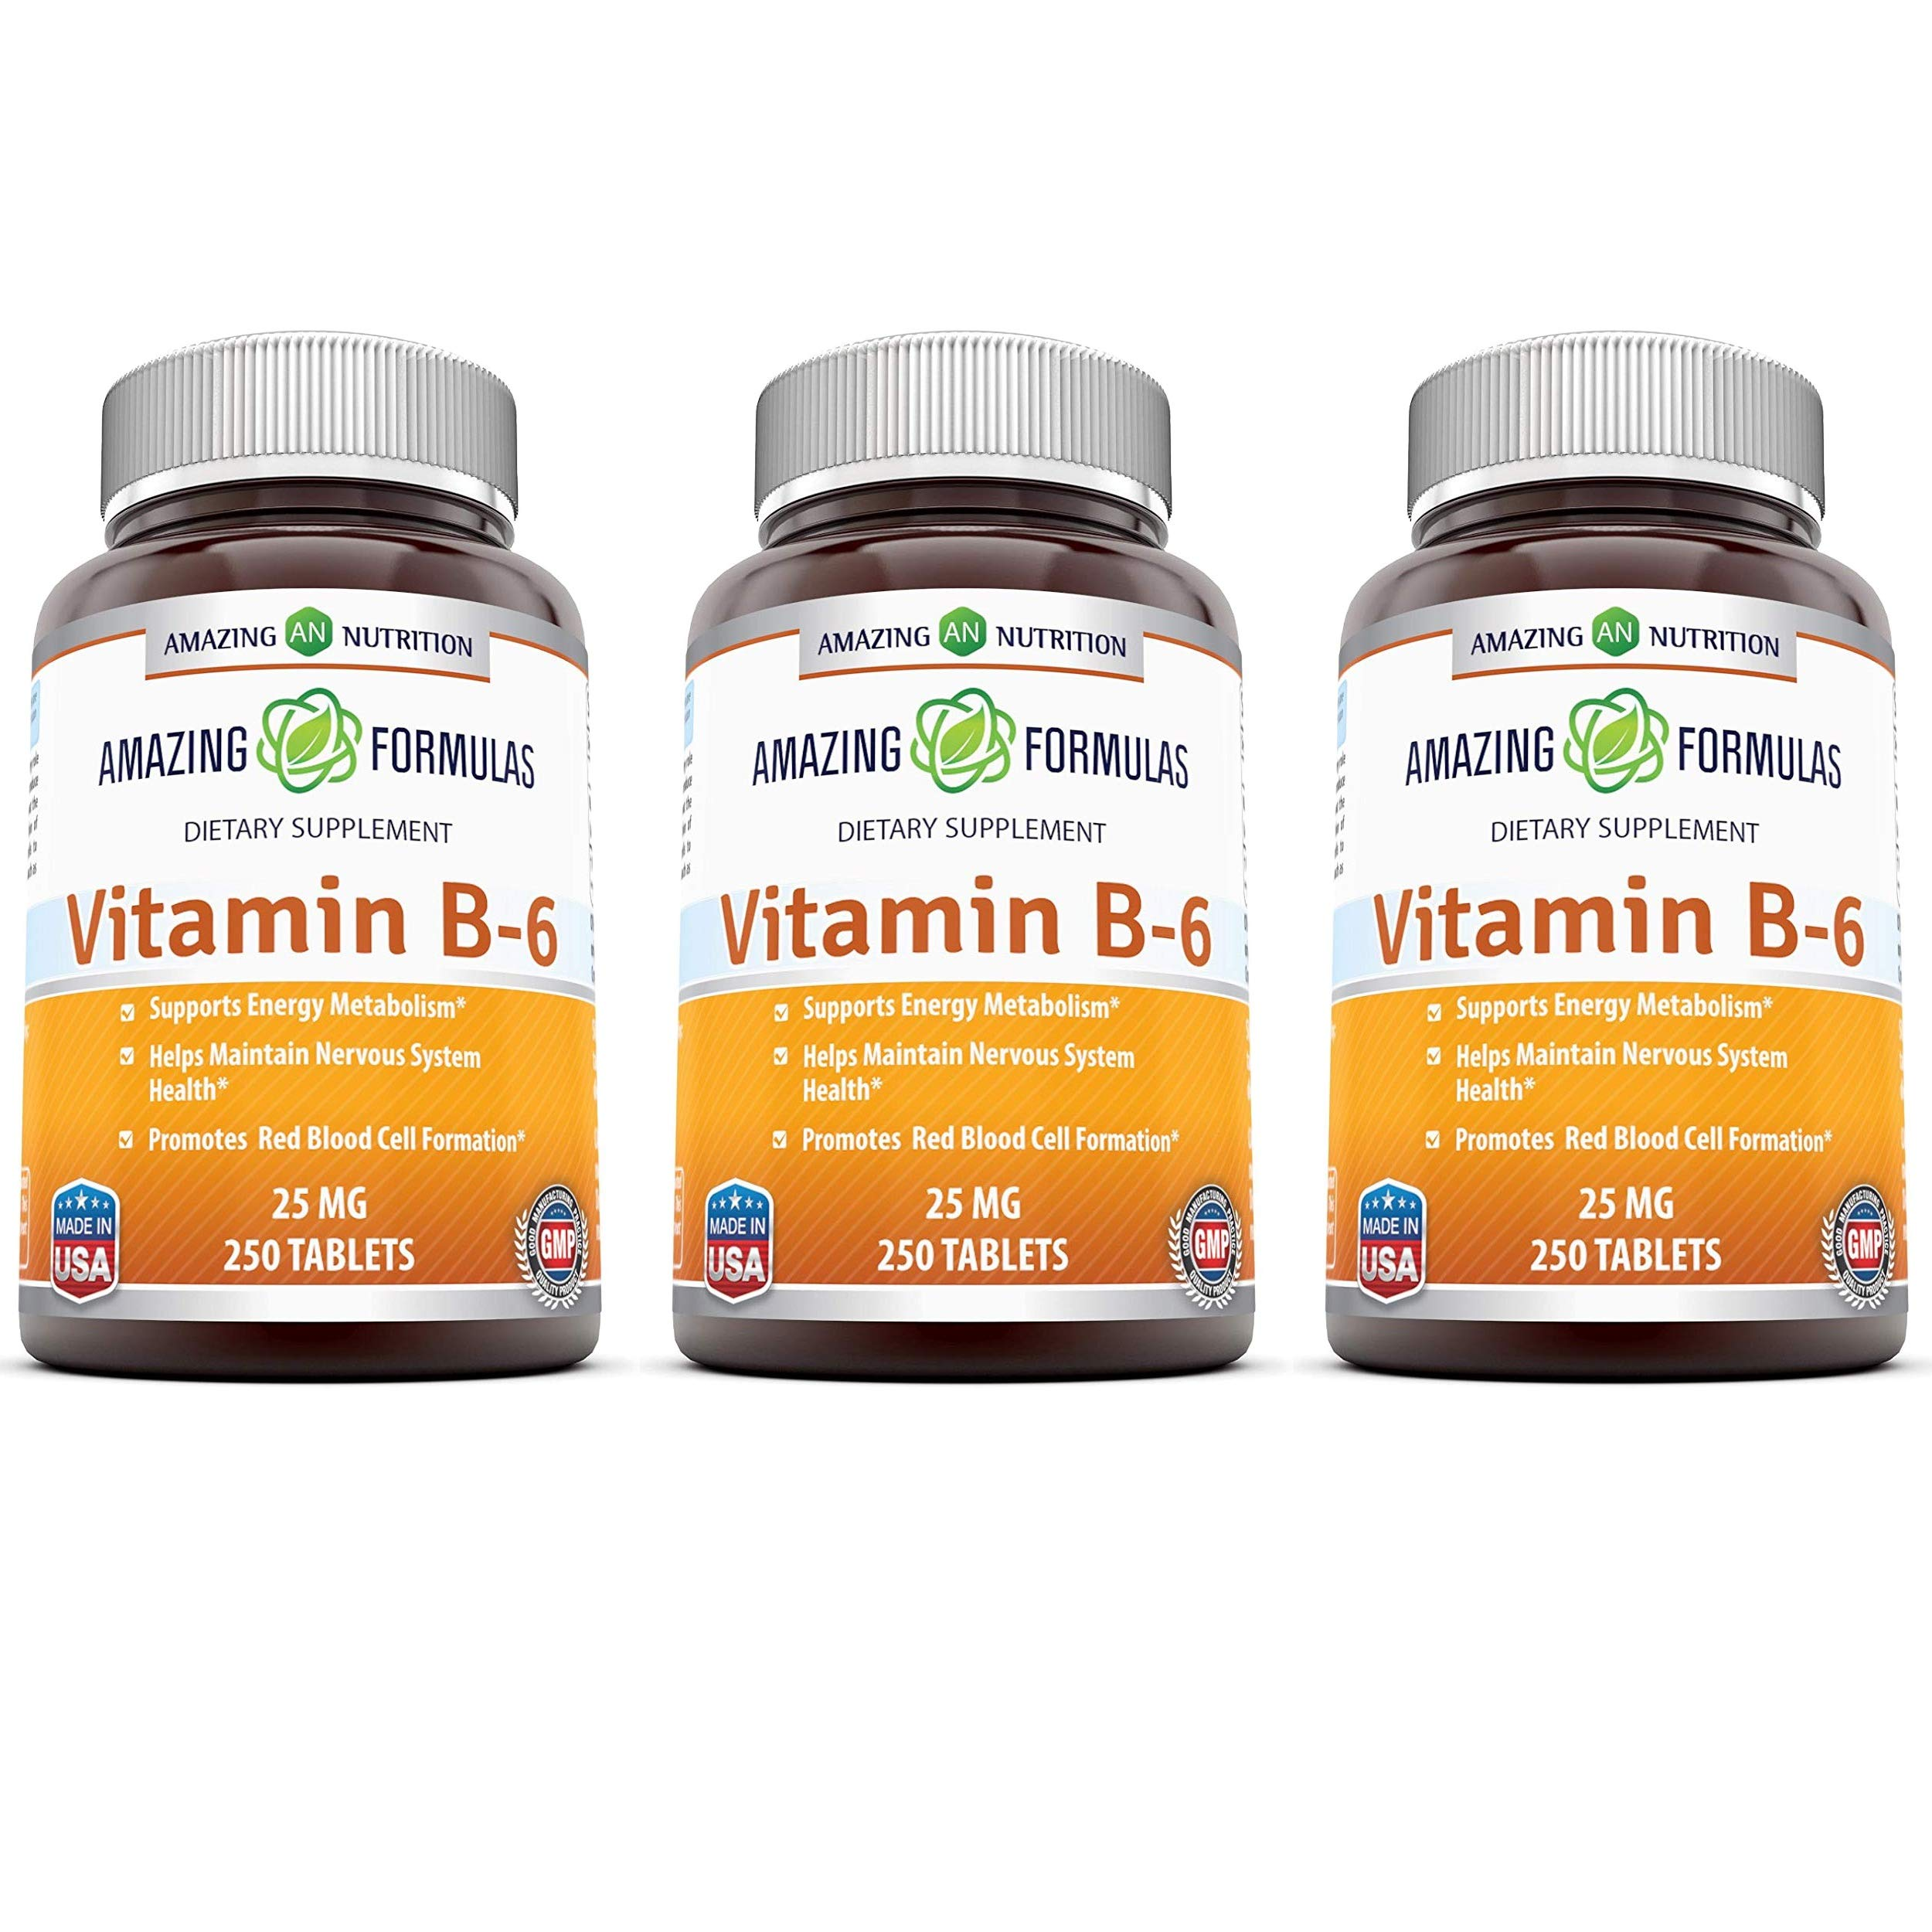 Amazing Nutrition Vitamin B6 Dietary Supplement - 25 mg, Pack of 3-250 Tablets - Supports Healthy Nervous System, Metabolism & Cell Health